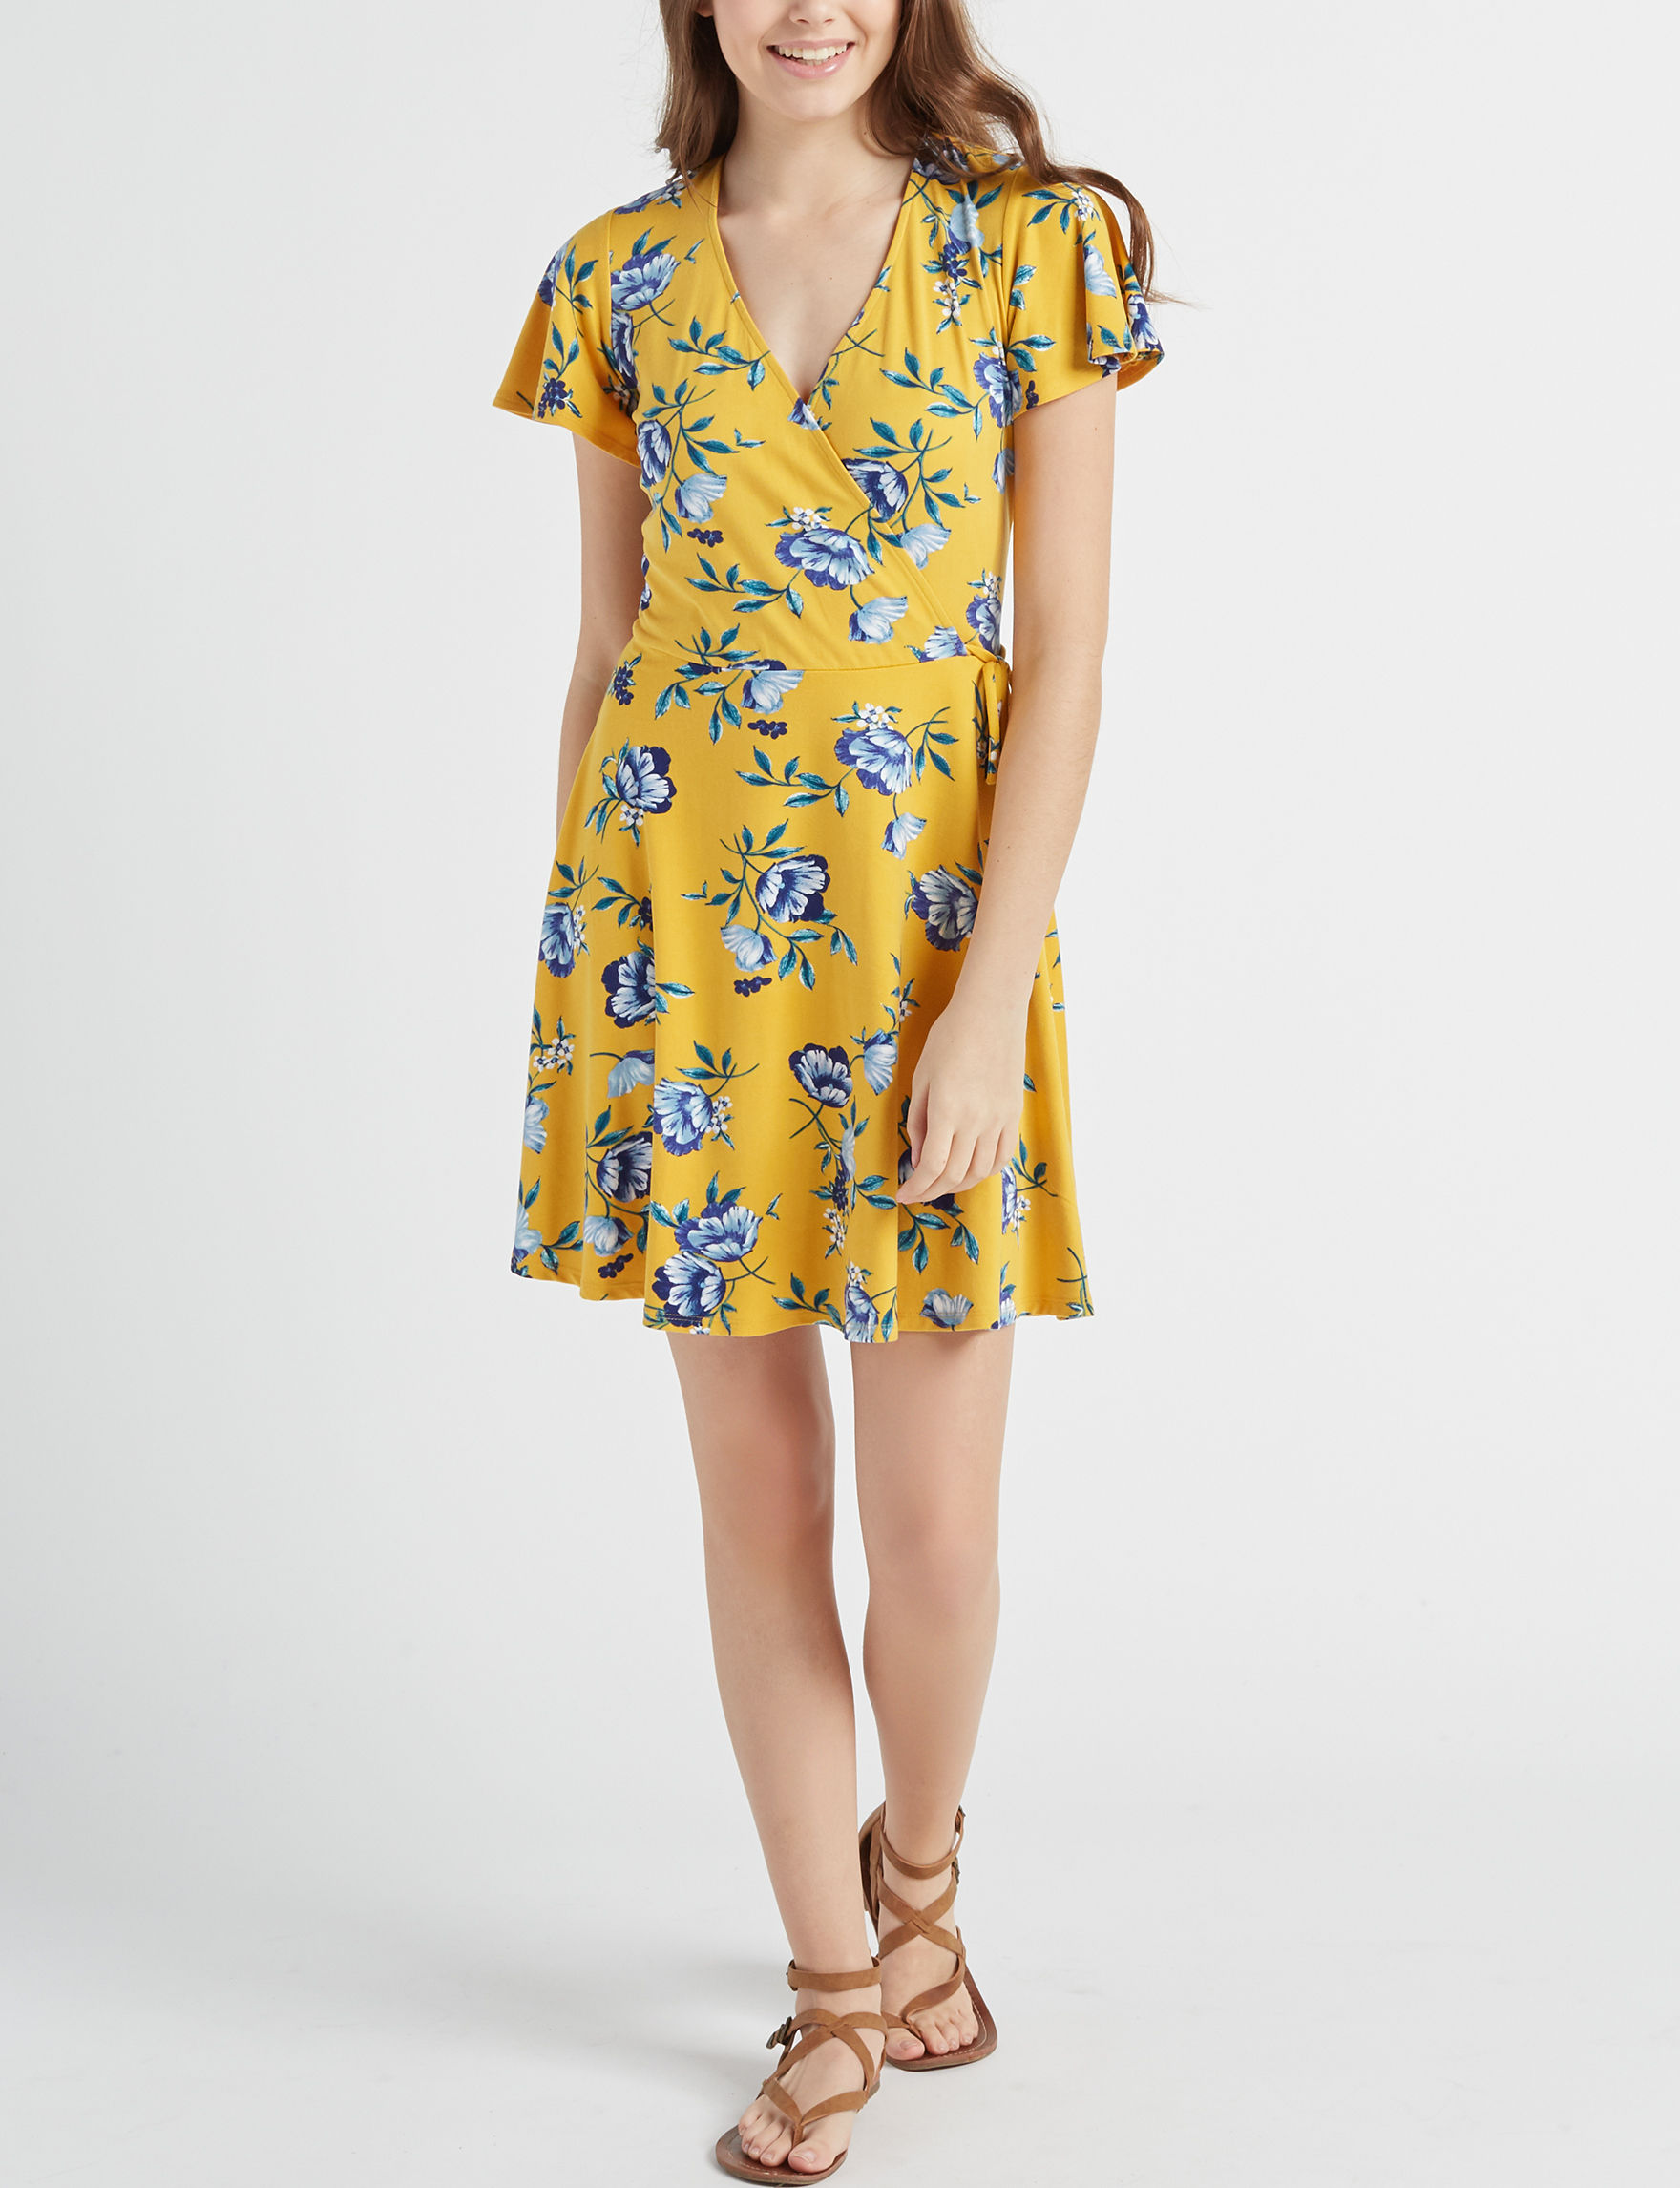 A. Byer Yellow / Blue Everyday & Casual Fit & Flare Dresses